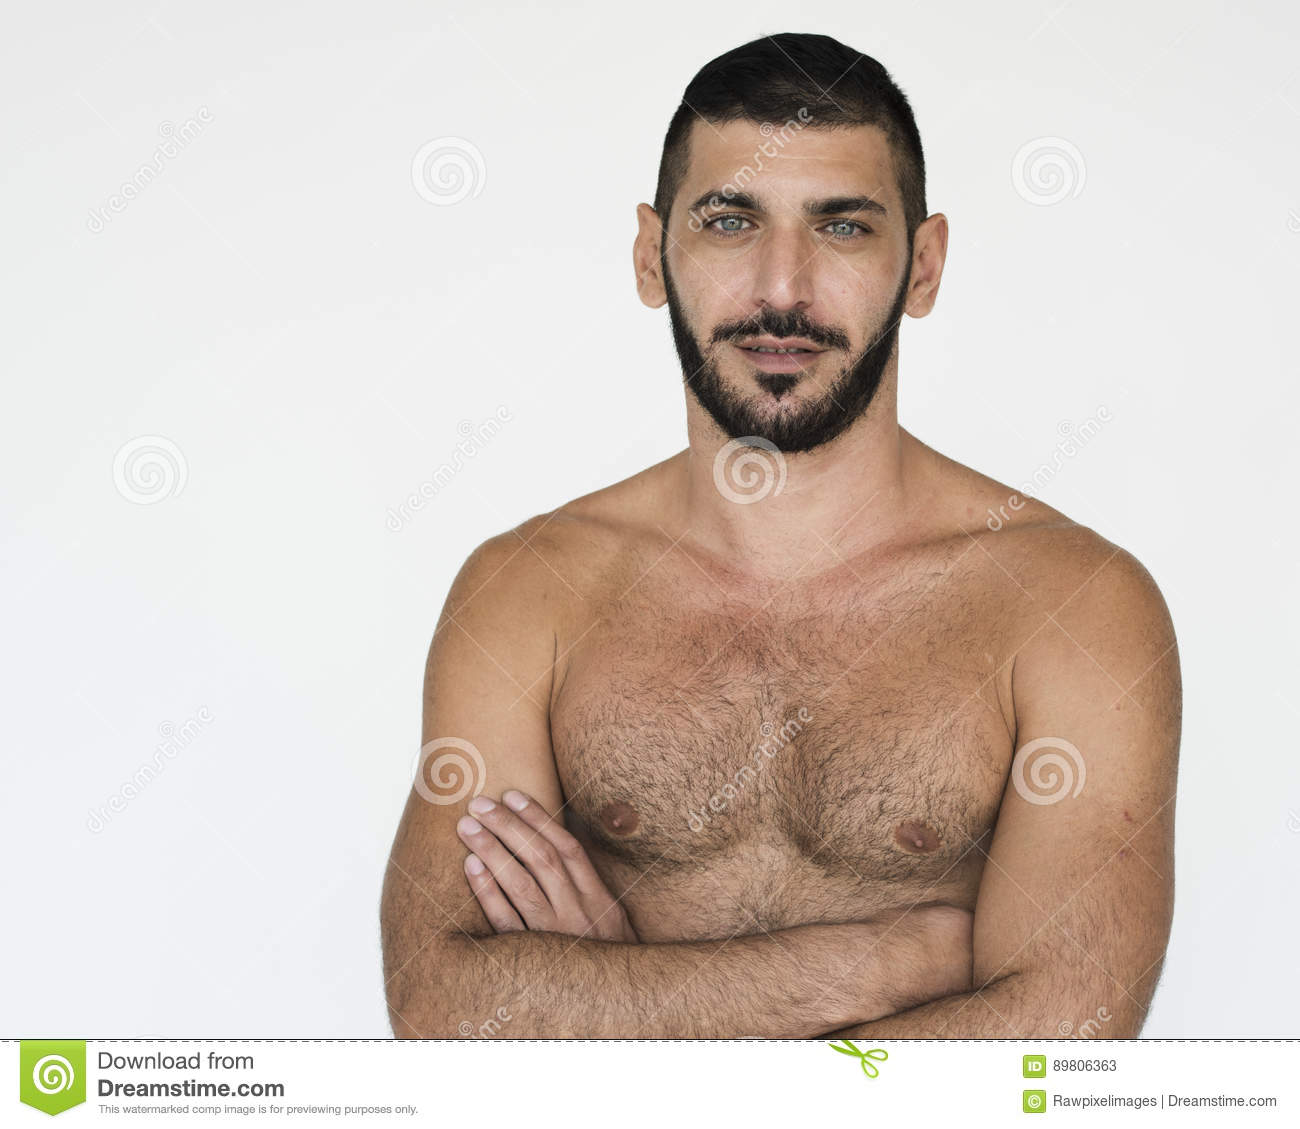 middle eastern man bare